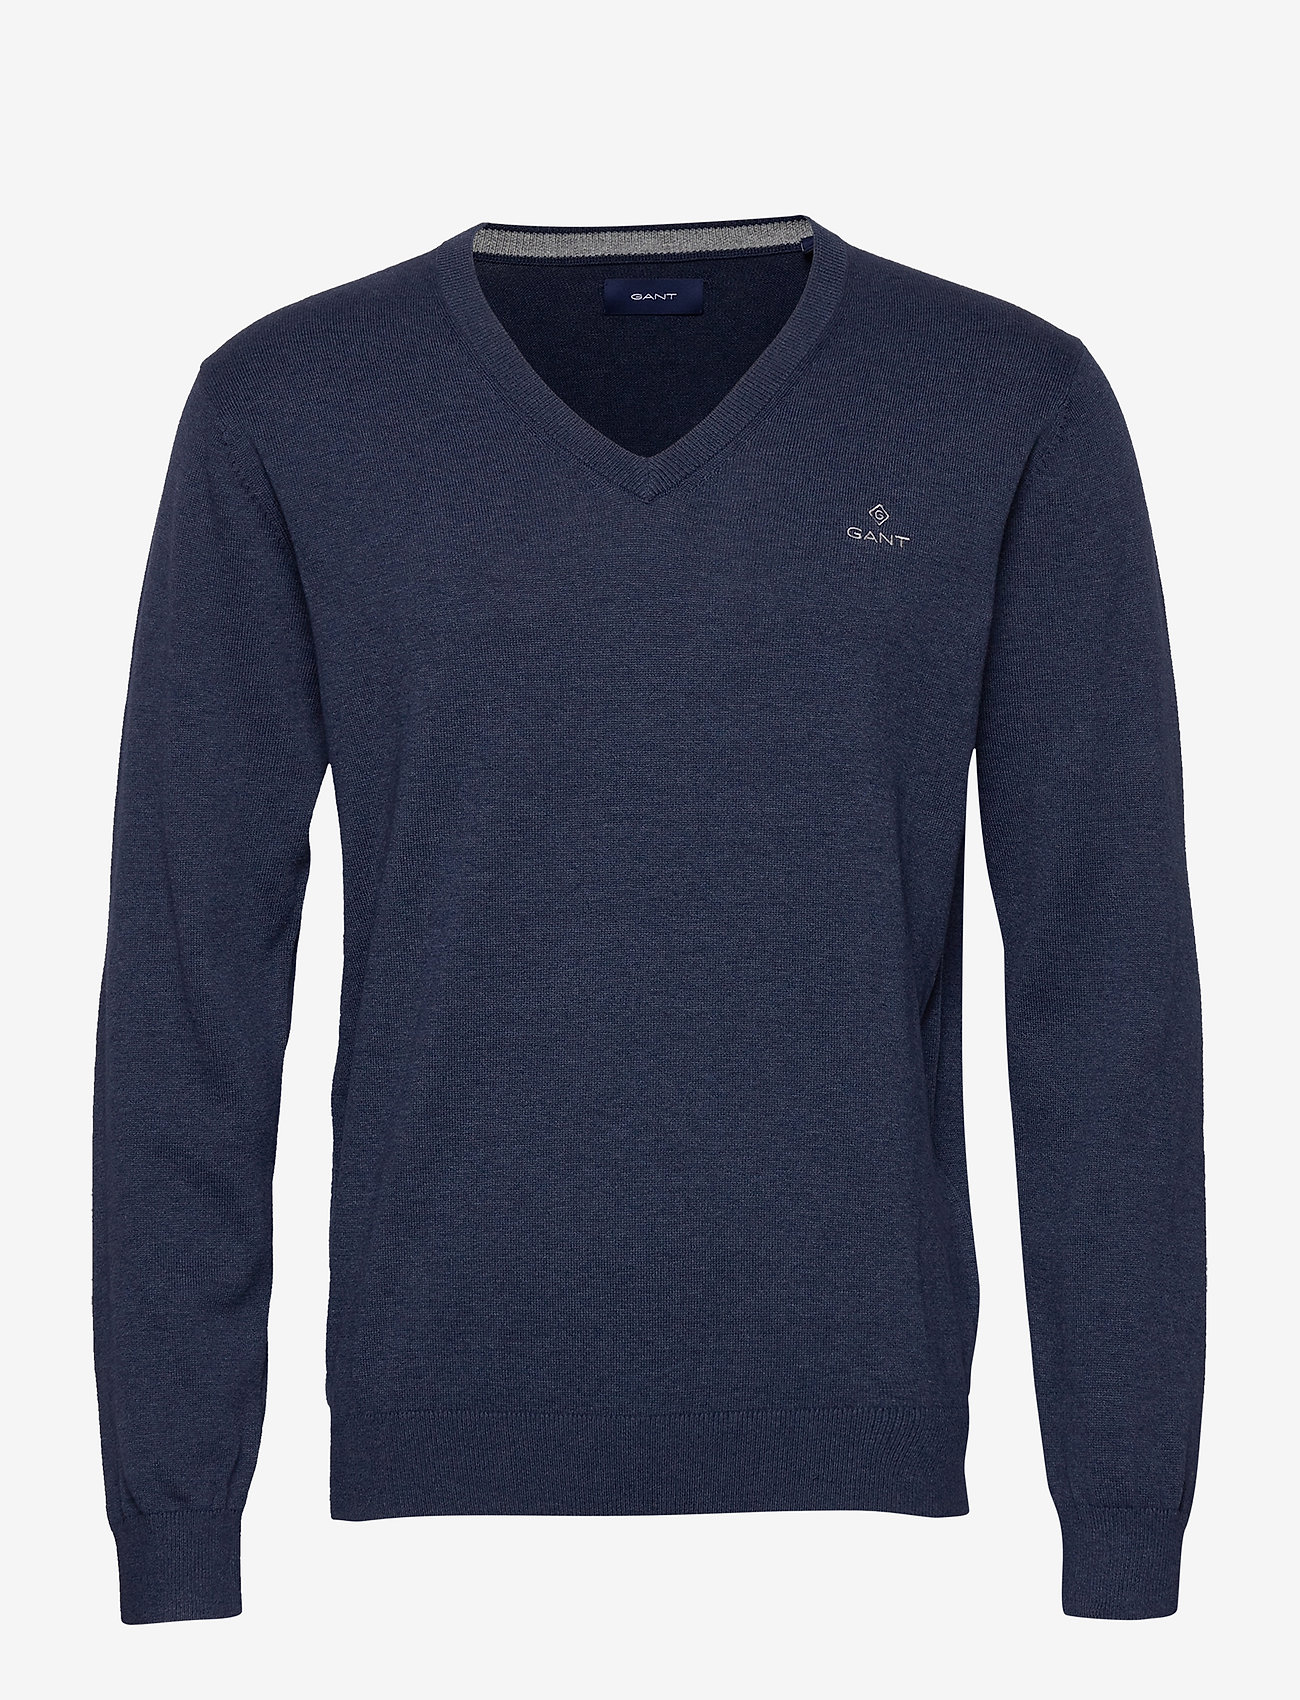 GANT - CLASSIC COTTON V-NECK - knitted v-necks - dark jeansblue melange - 0